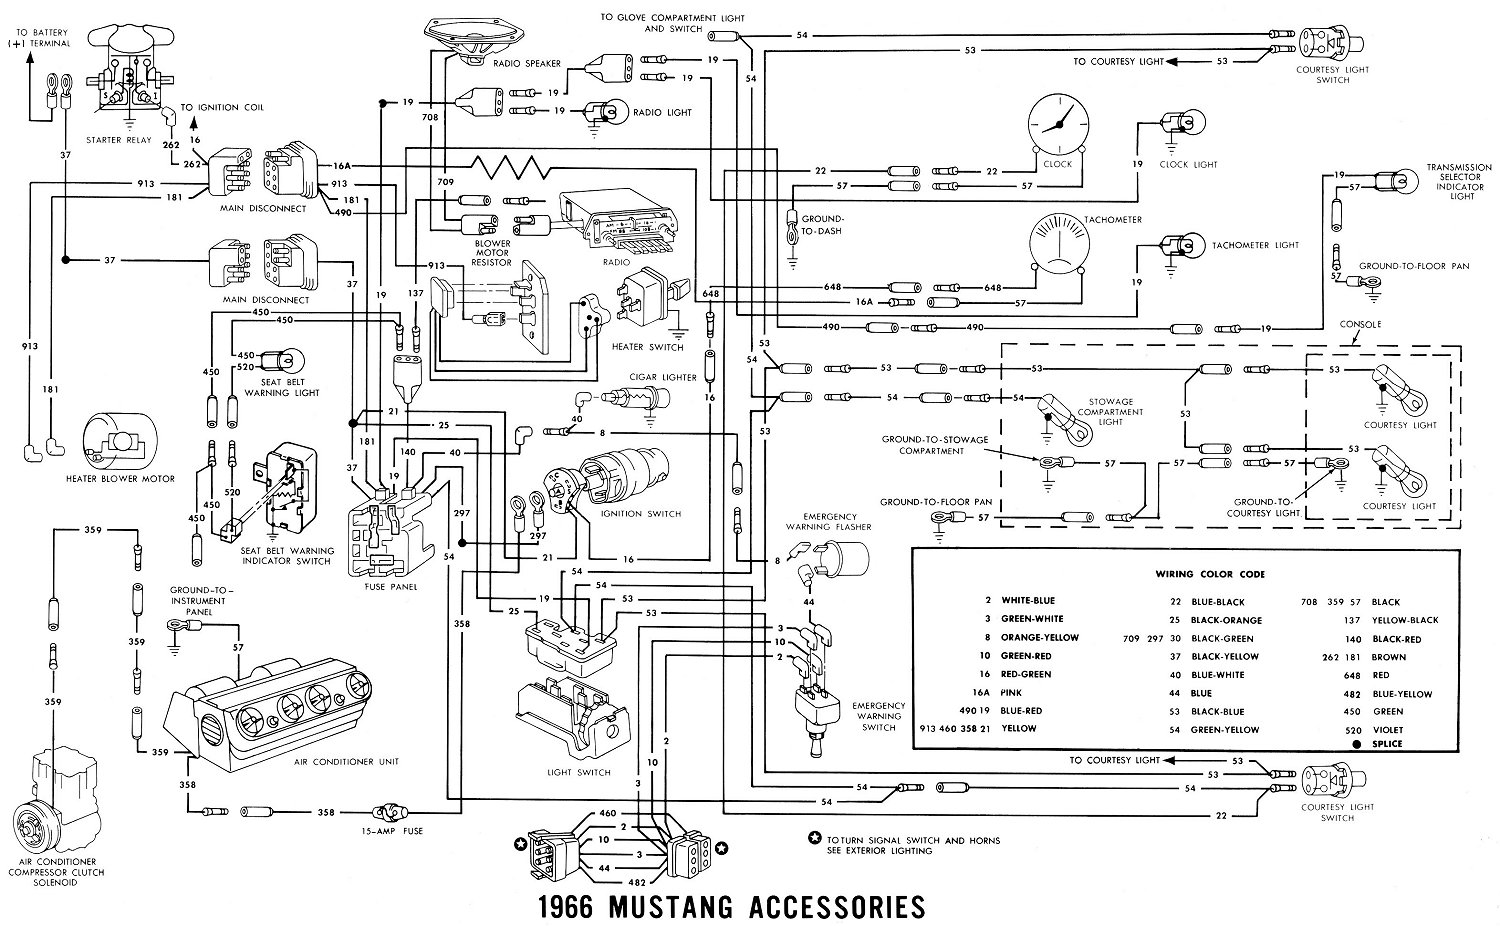 66acces1 1966 mustang wiring diagrams average joe restoration ford ignition wiring diagram at webbmarketing.co